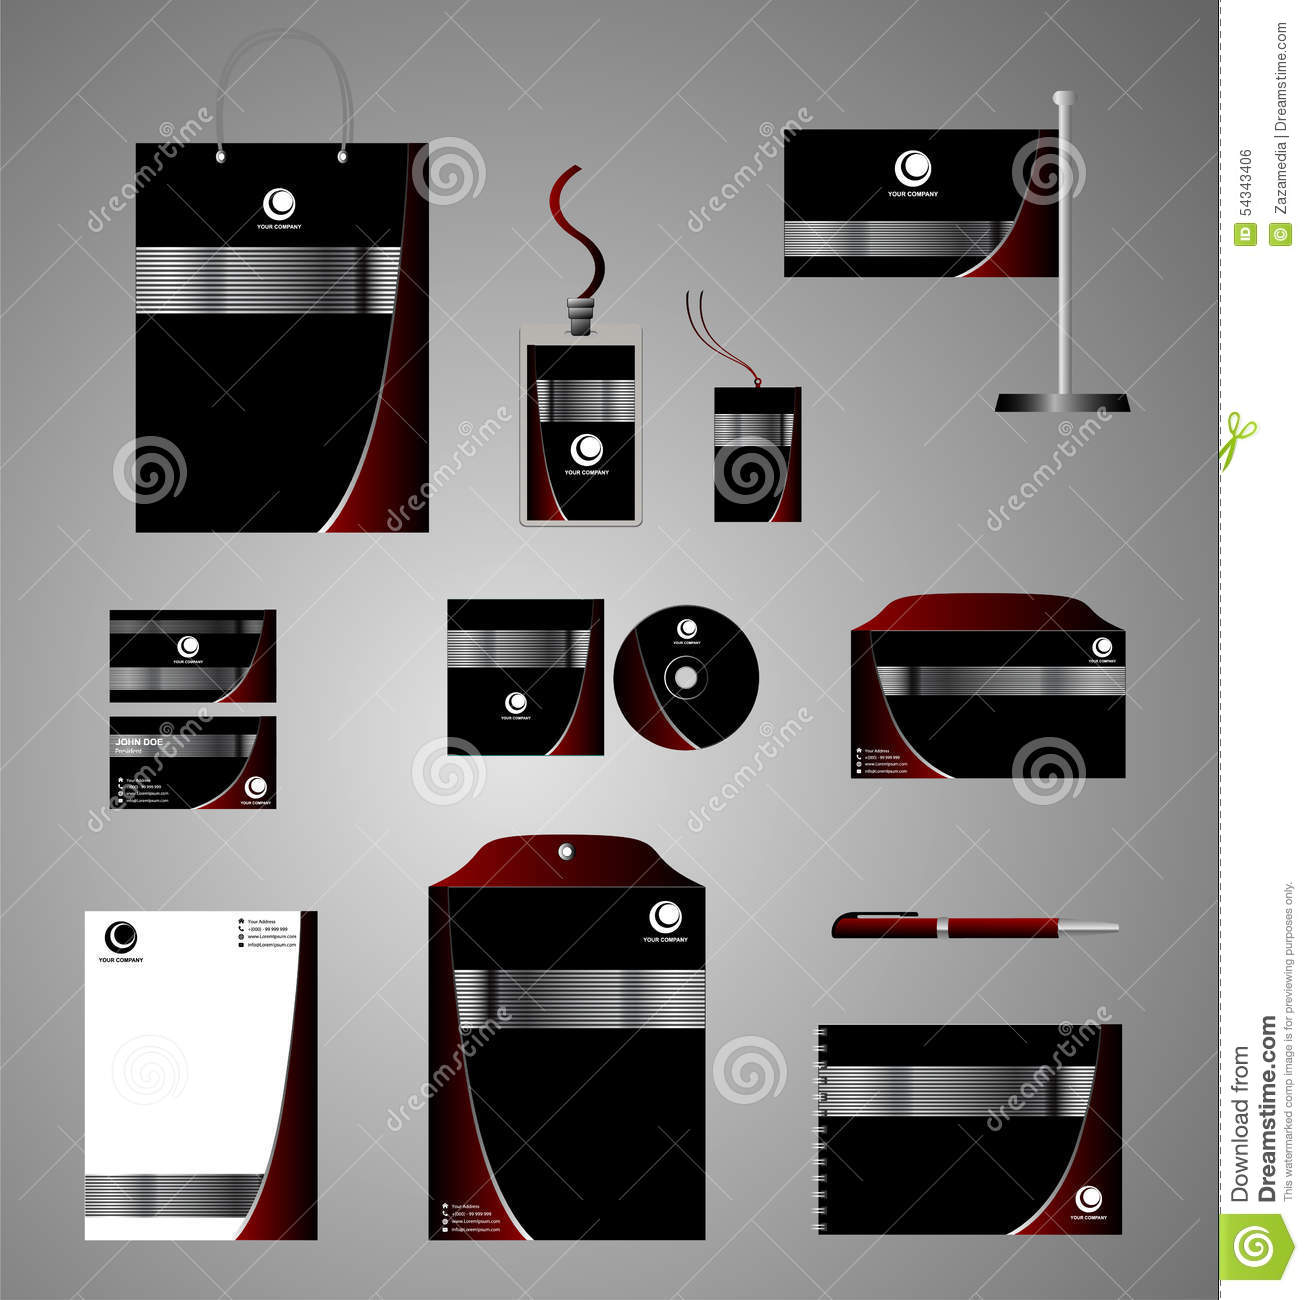 Black Corporate Identity Template With Red Elements